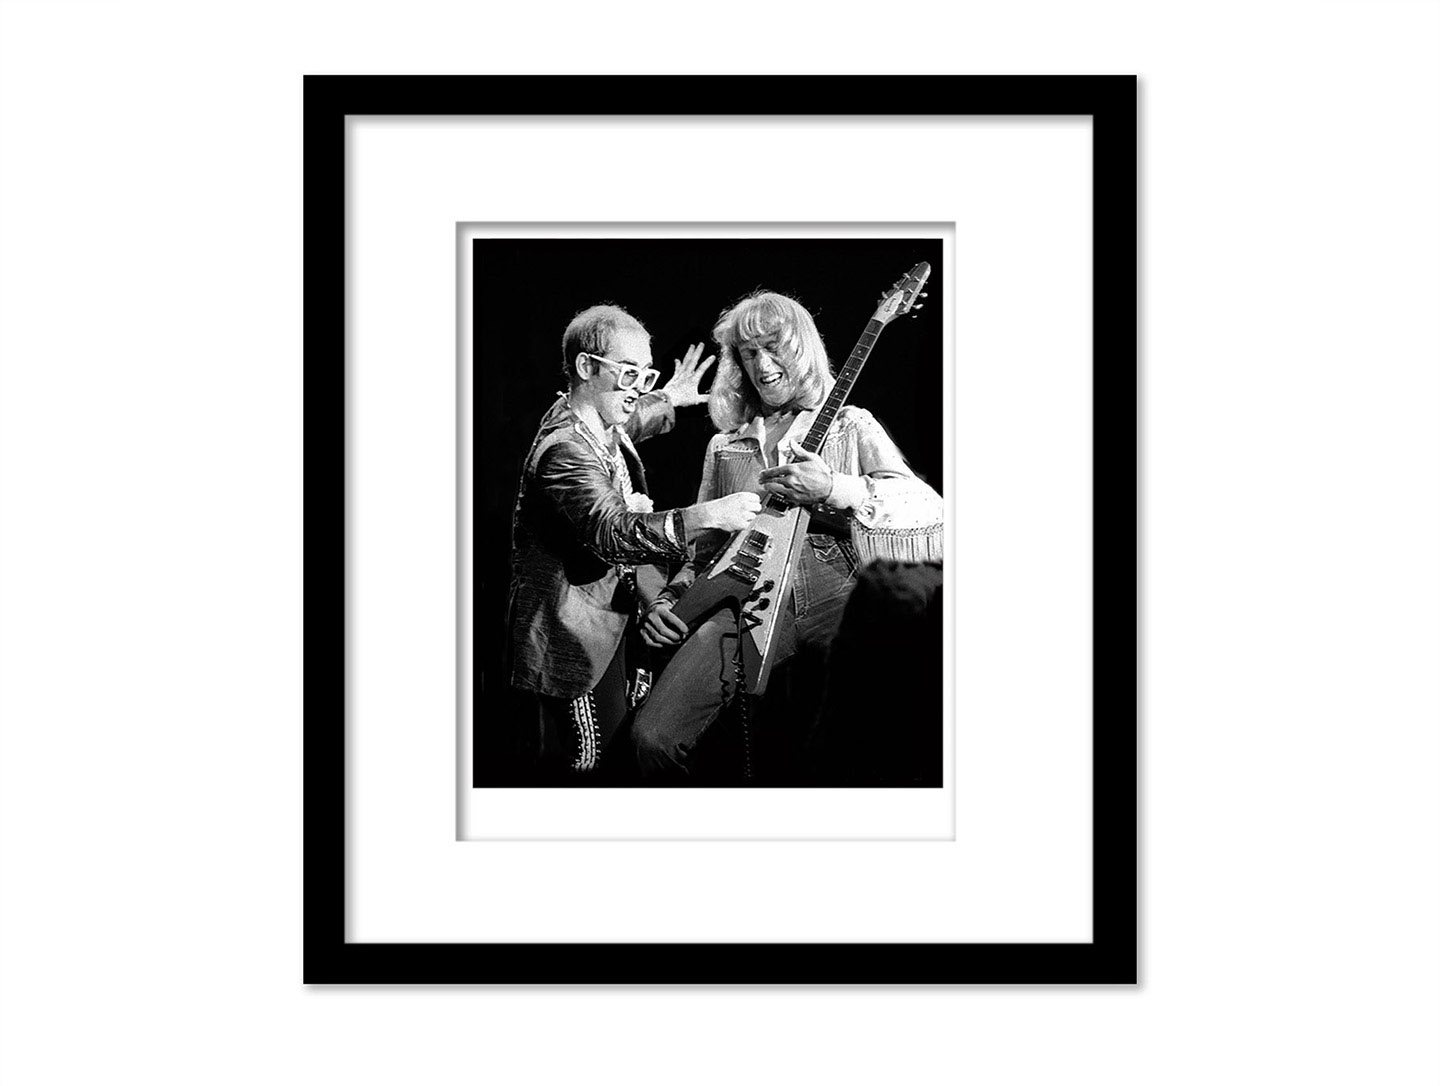 FAREWELL TOUR SPECIAL LIMITED EDTION PRINTSPRICES REFLECT 40% DISCOUNTEACH UNFRAMED PRINT IS SIGNED AND NUMBEREDWITH CERTIFICATE OF AUTHENTICITYEach Size:  LIMITED EDITION of 50DROP DOWN FOR SIZES8X10 SMALL $105.00 USD11X14 MEDIUM $270.00 USD17X22 COLLECTOR $570.00 USD